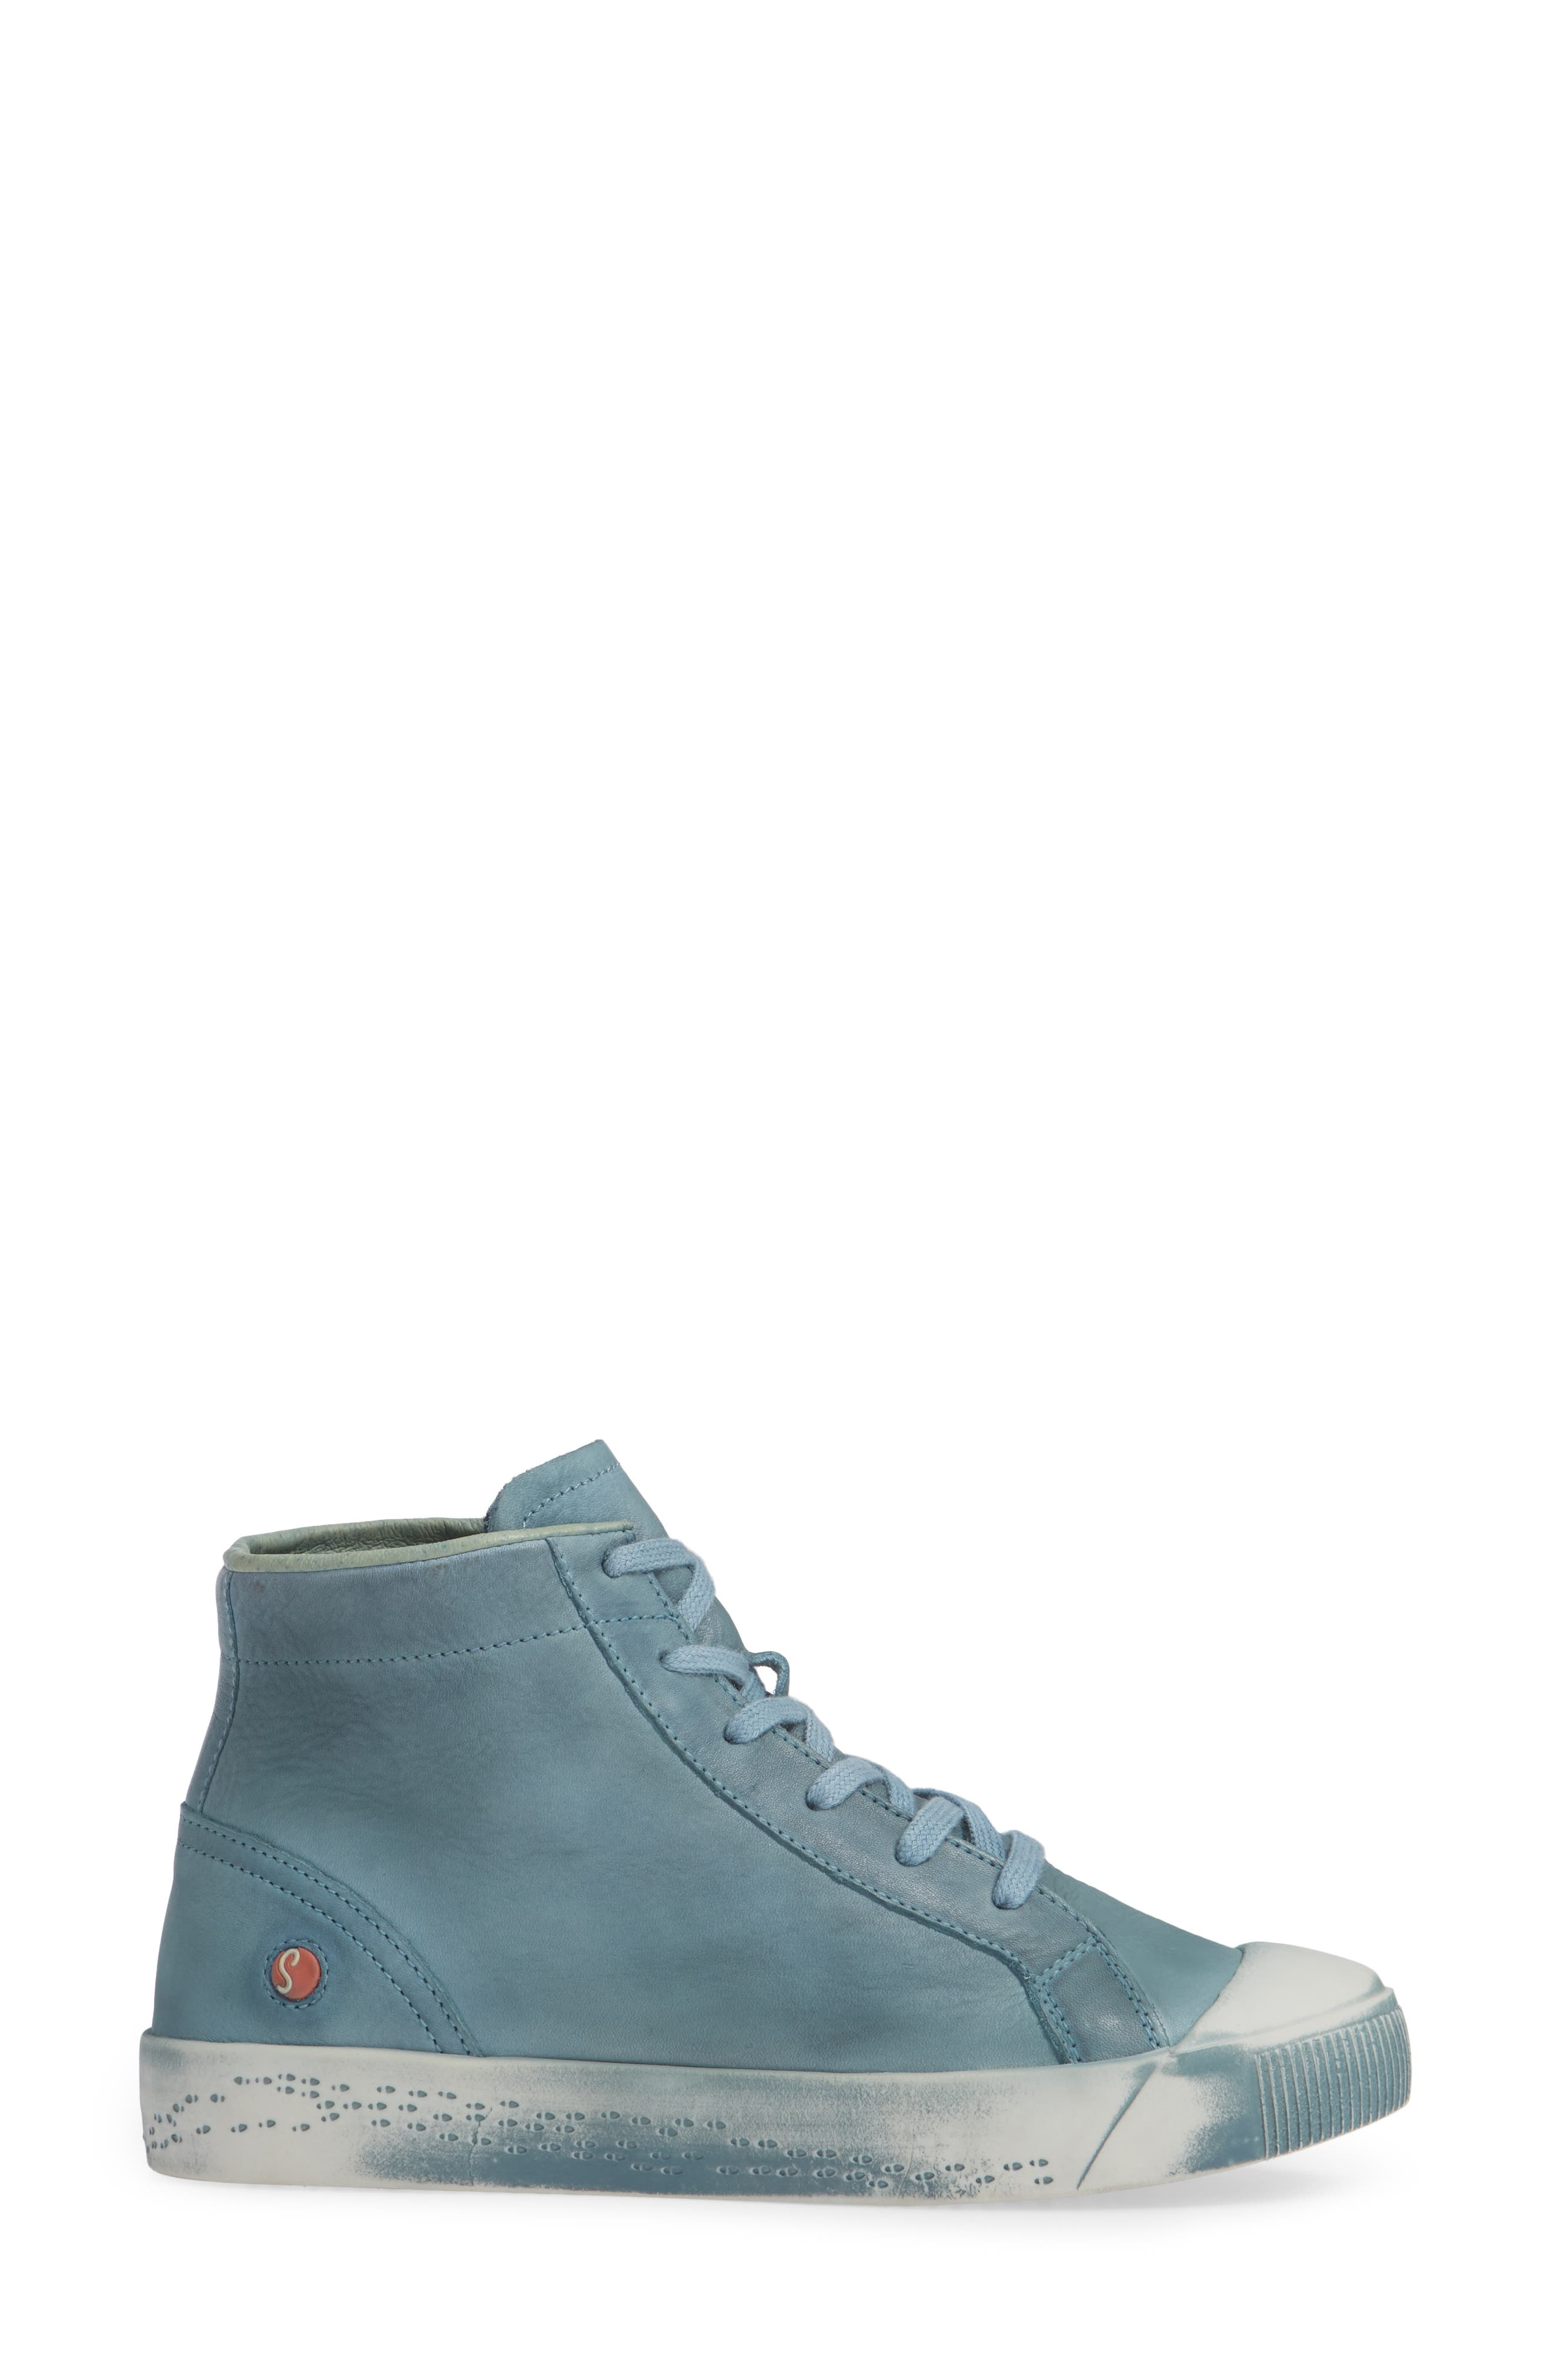 Kip High Top Sneaker,                             Alternate thumbnail 3, color,                             NUDE BLUE WASHED LEATHER